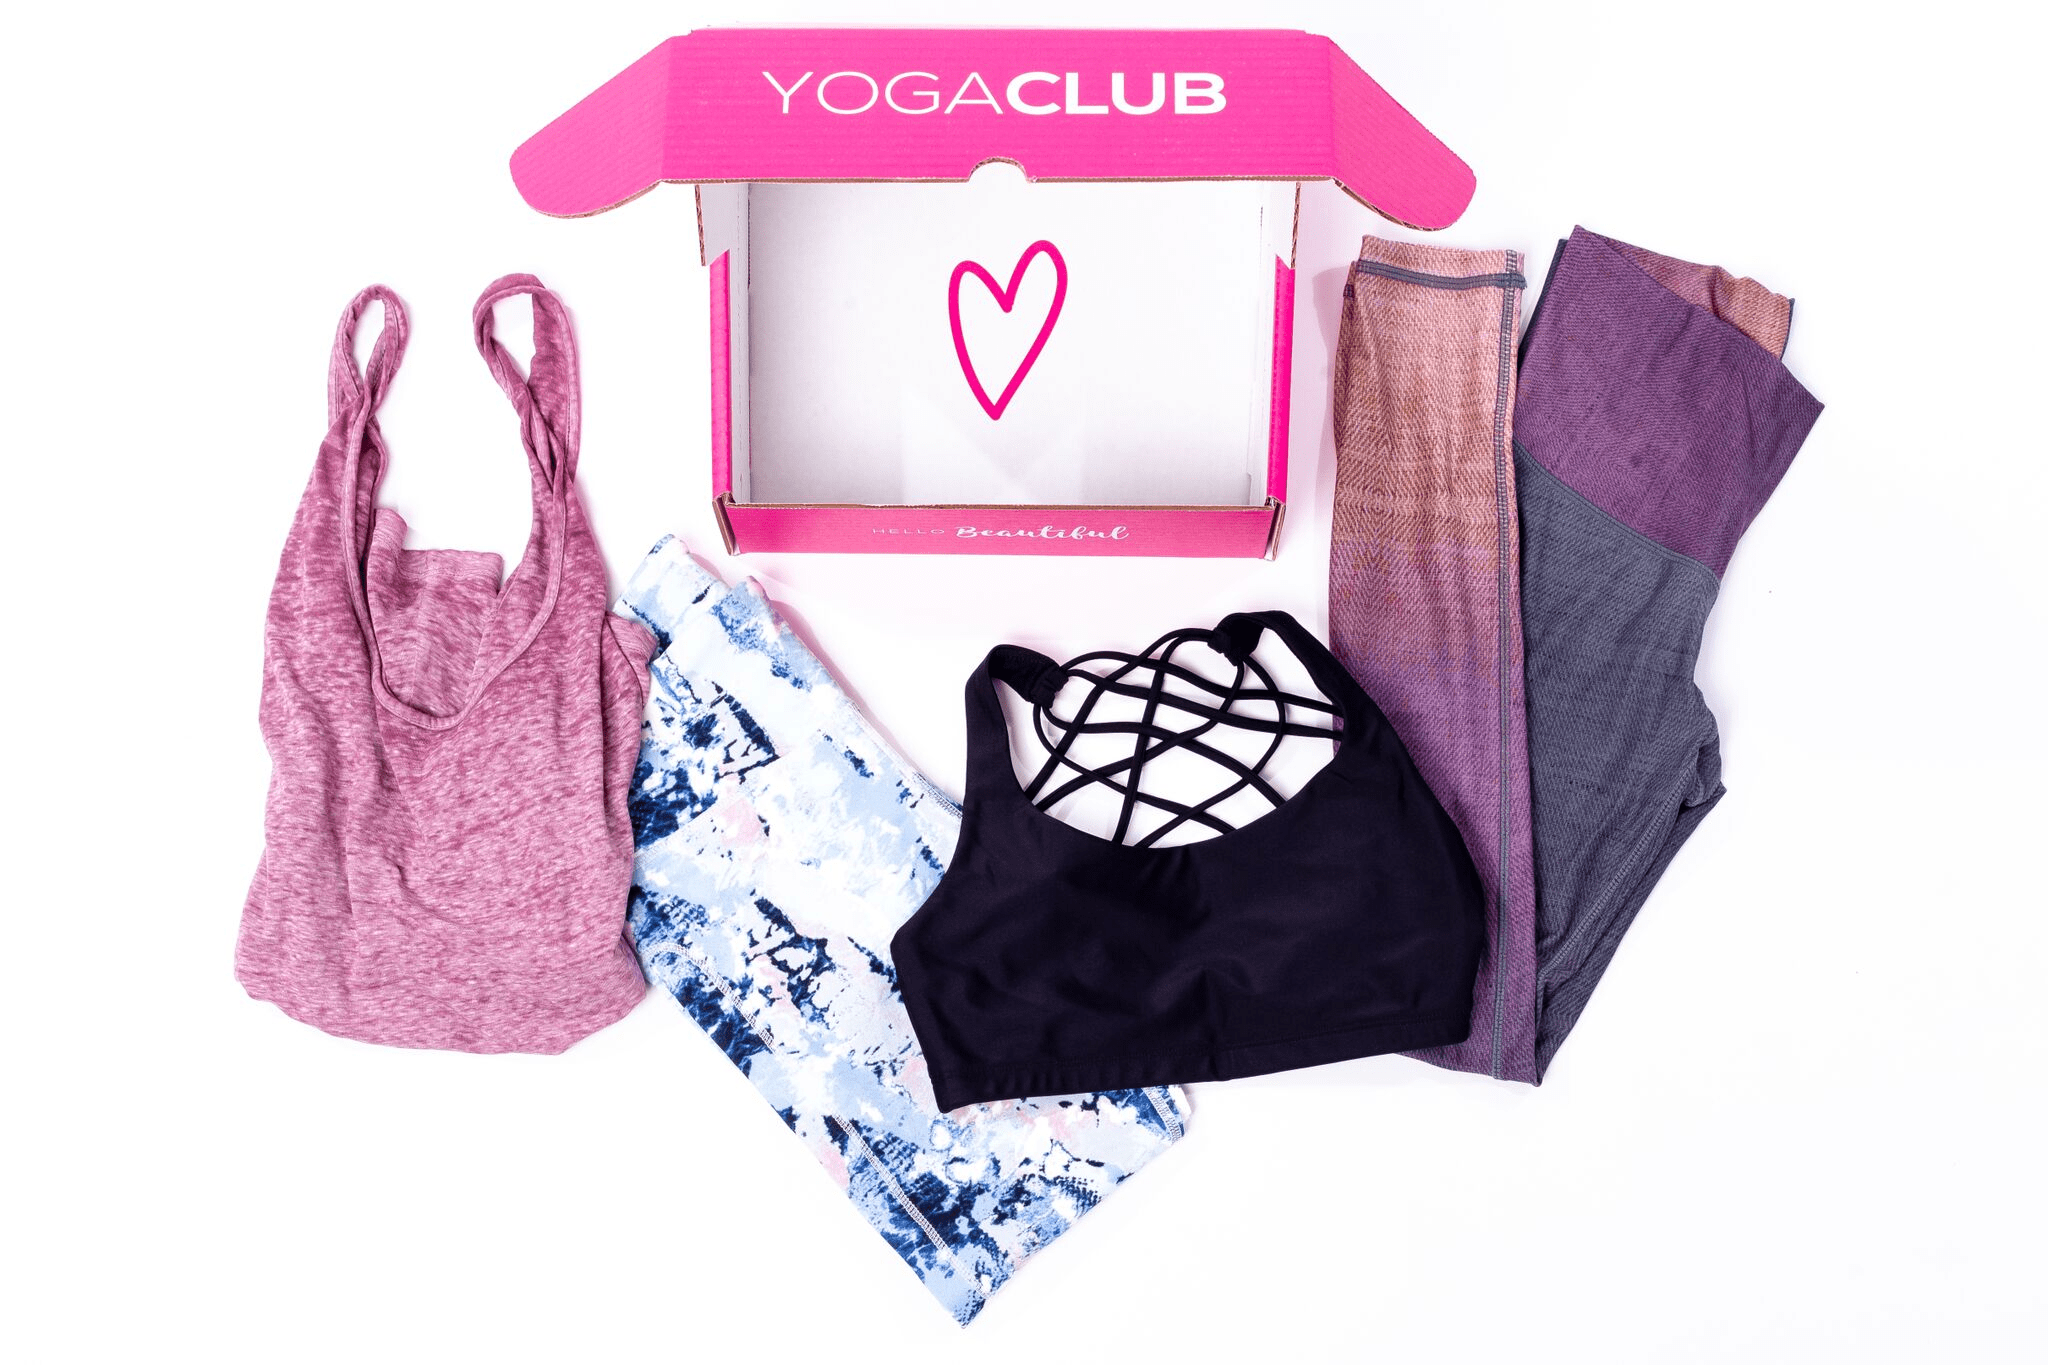 YogaClub Giving Tuesday 2018 Coupon: Pay Only $59 Per Month For Life – TODAY ONLY!